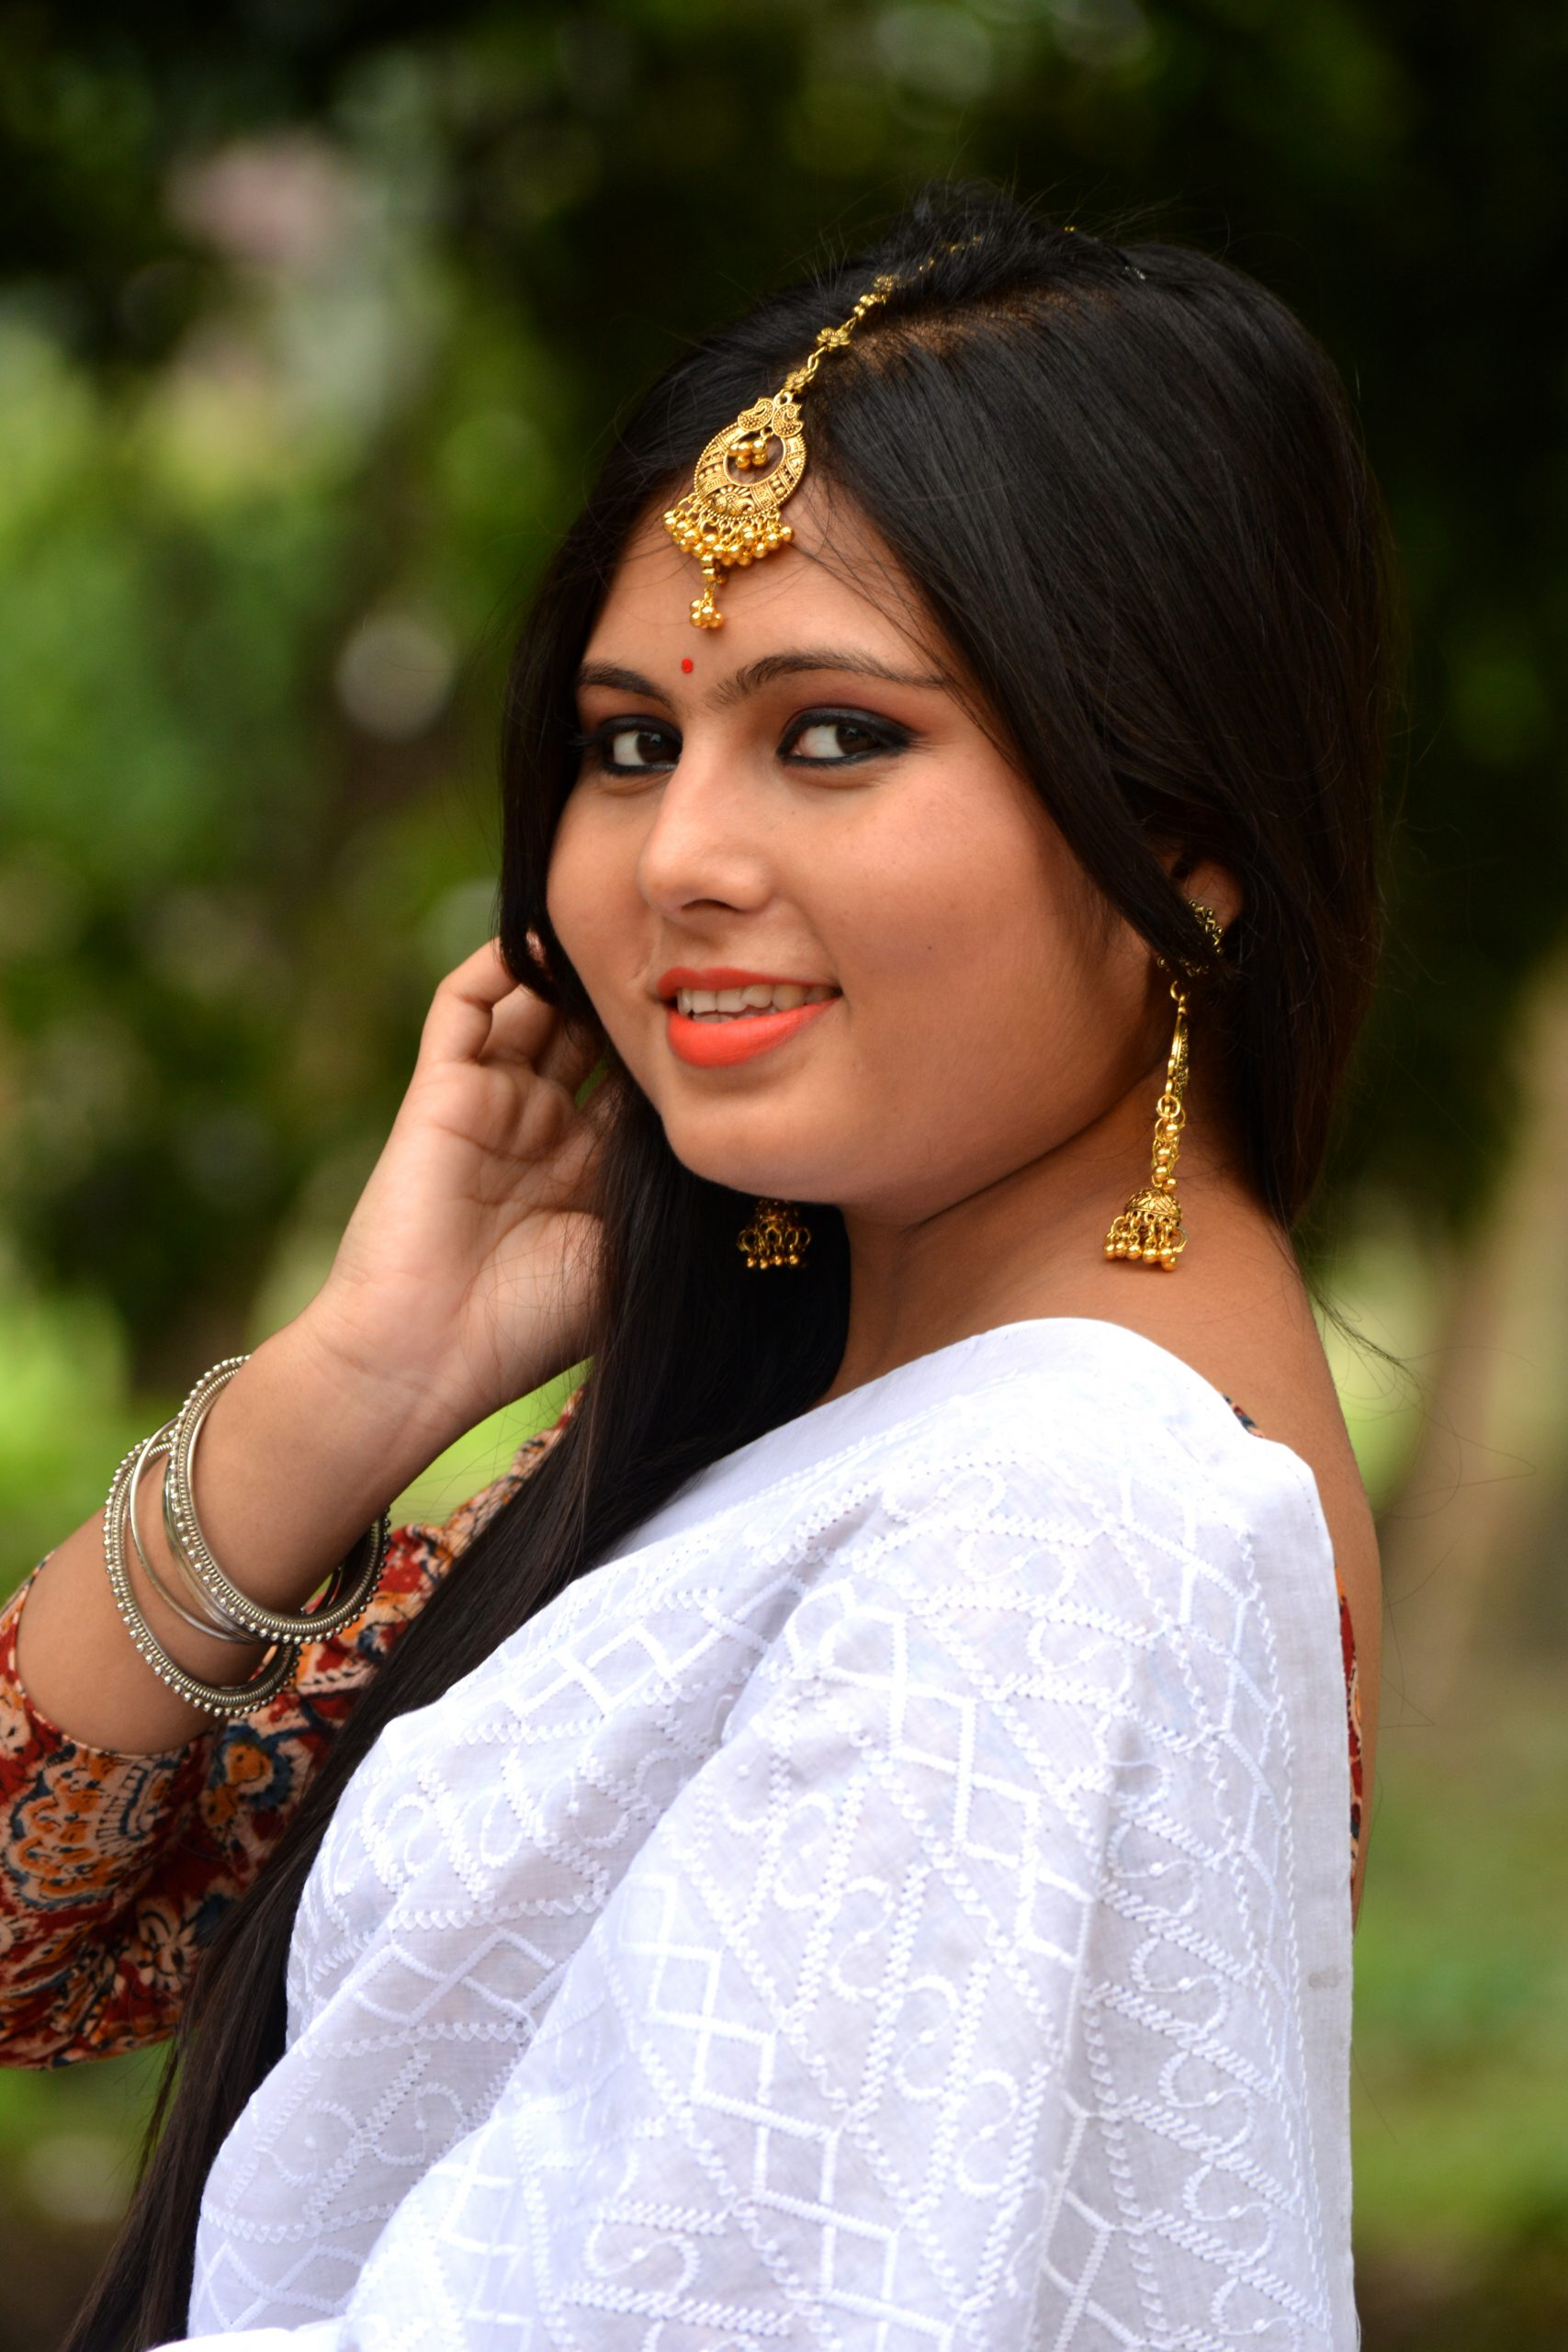 An Indian woman in traditional dress